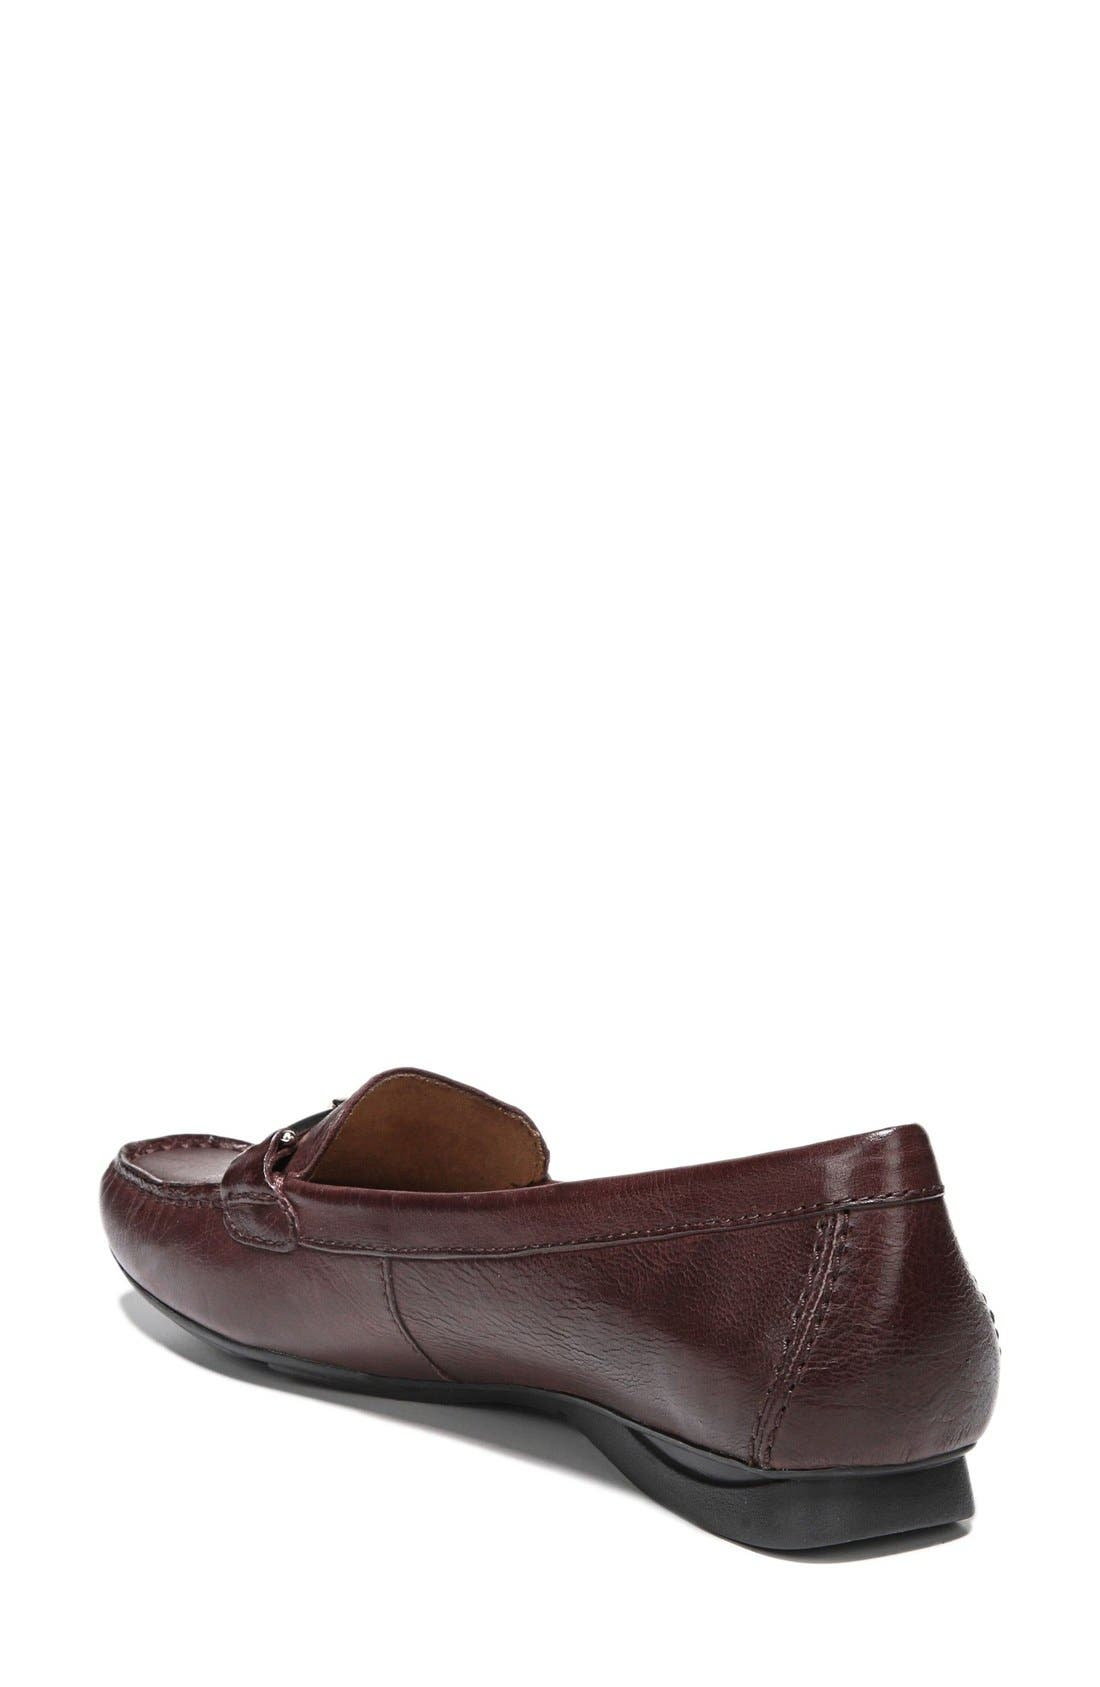 'Saturday' Loafer,                             Alternate thumbnail 14, color,